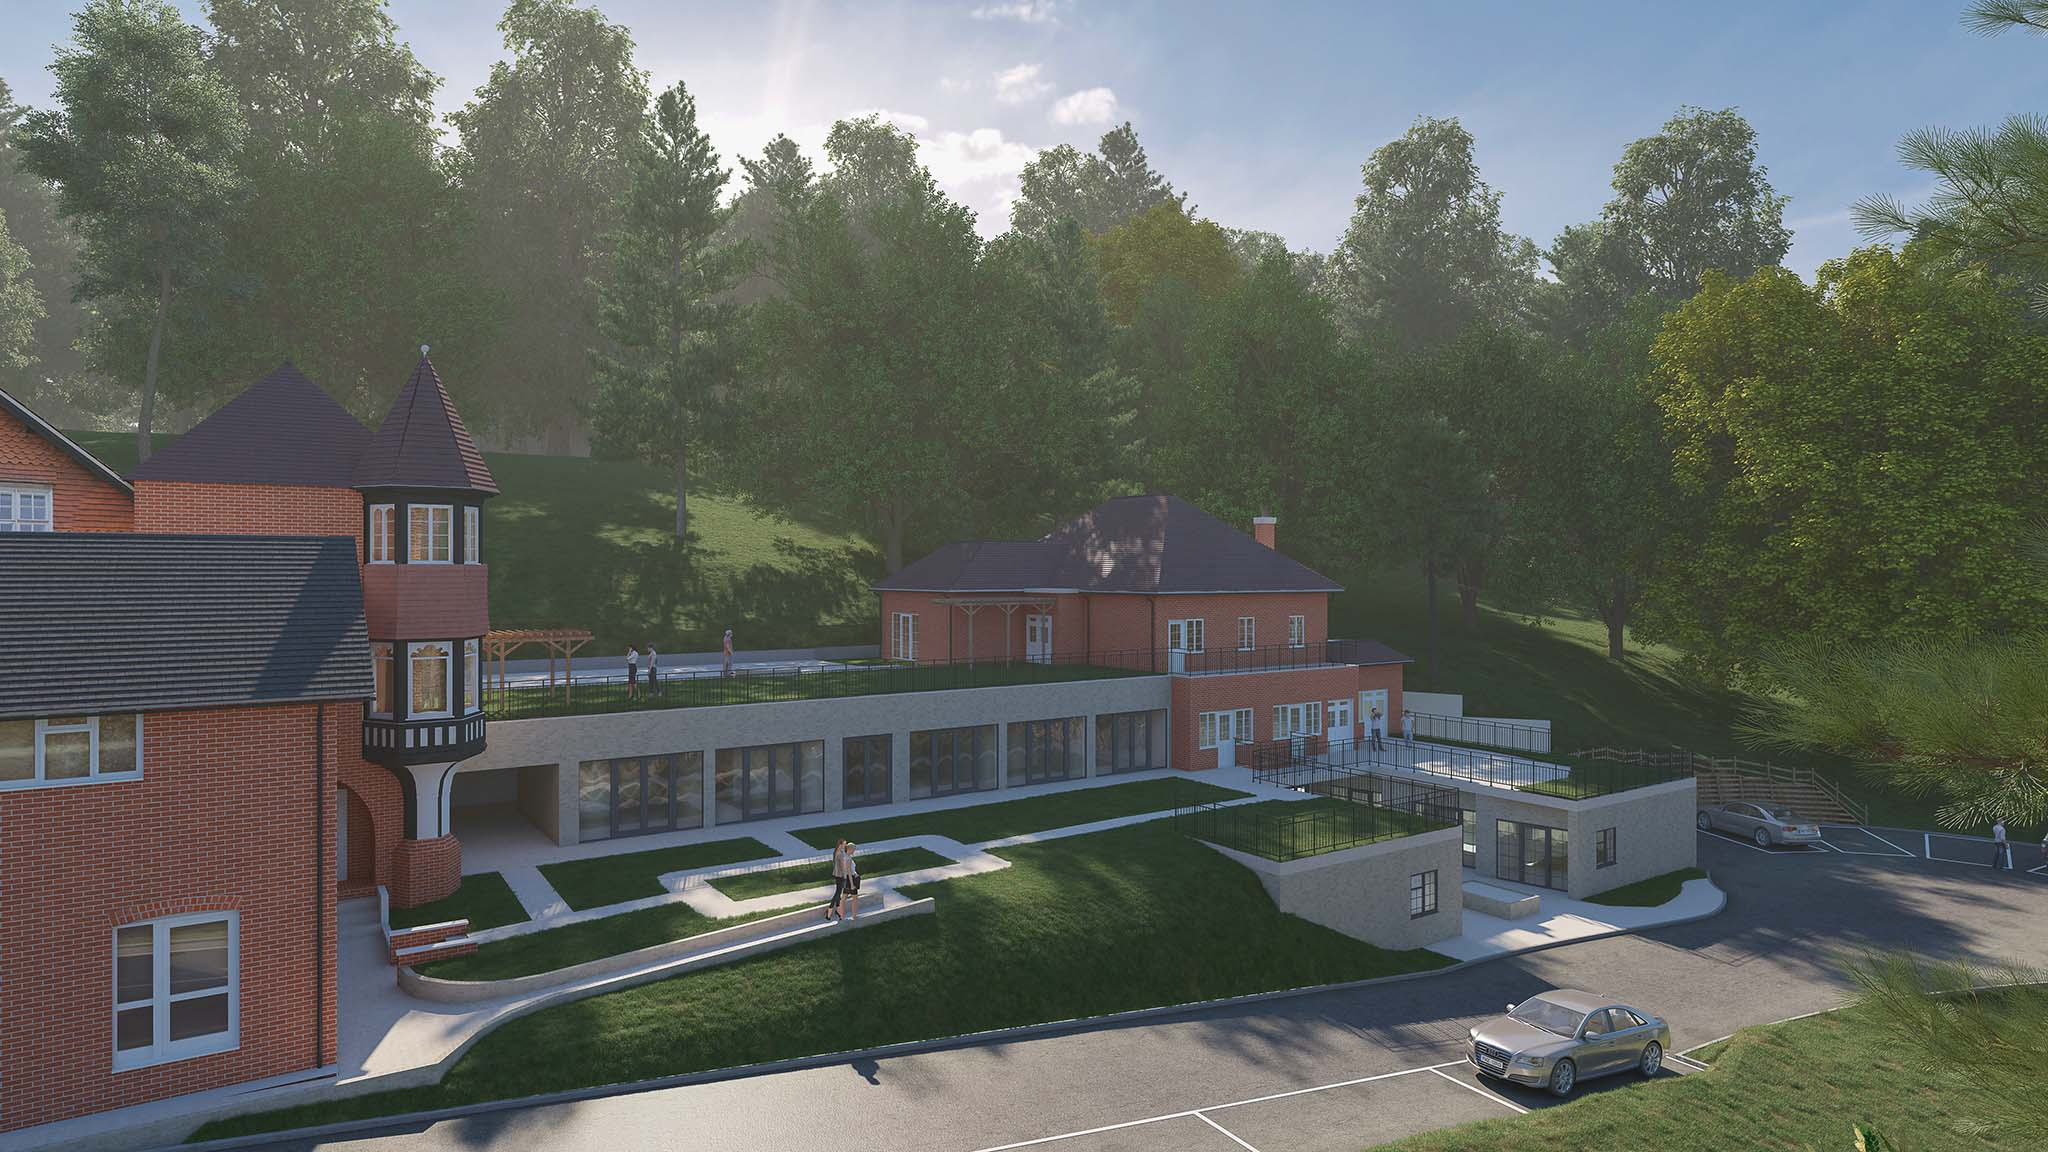 Rendered Image - 3D Landscape - Brownscombe House